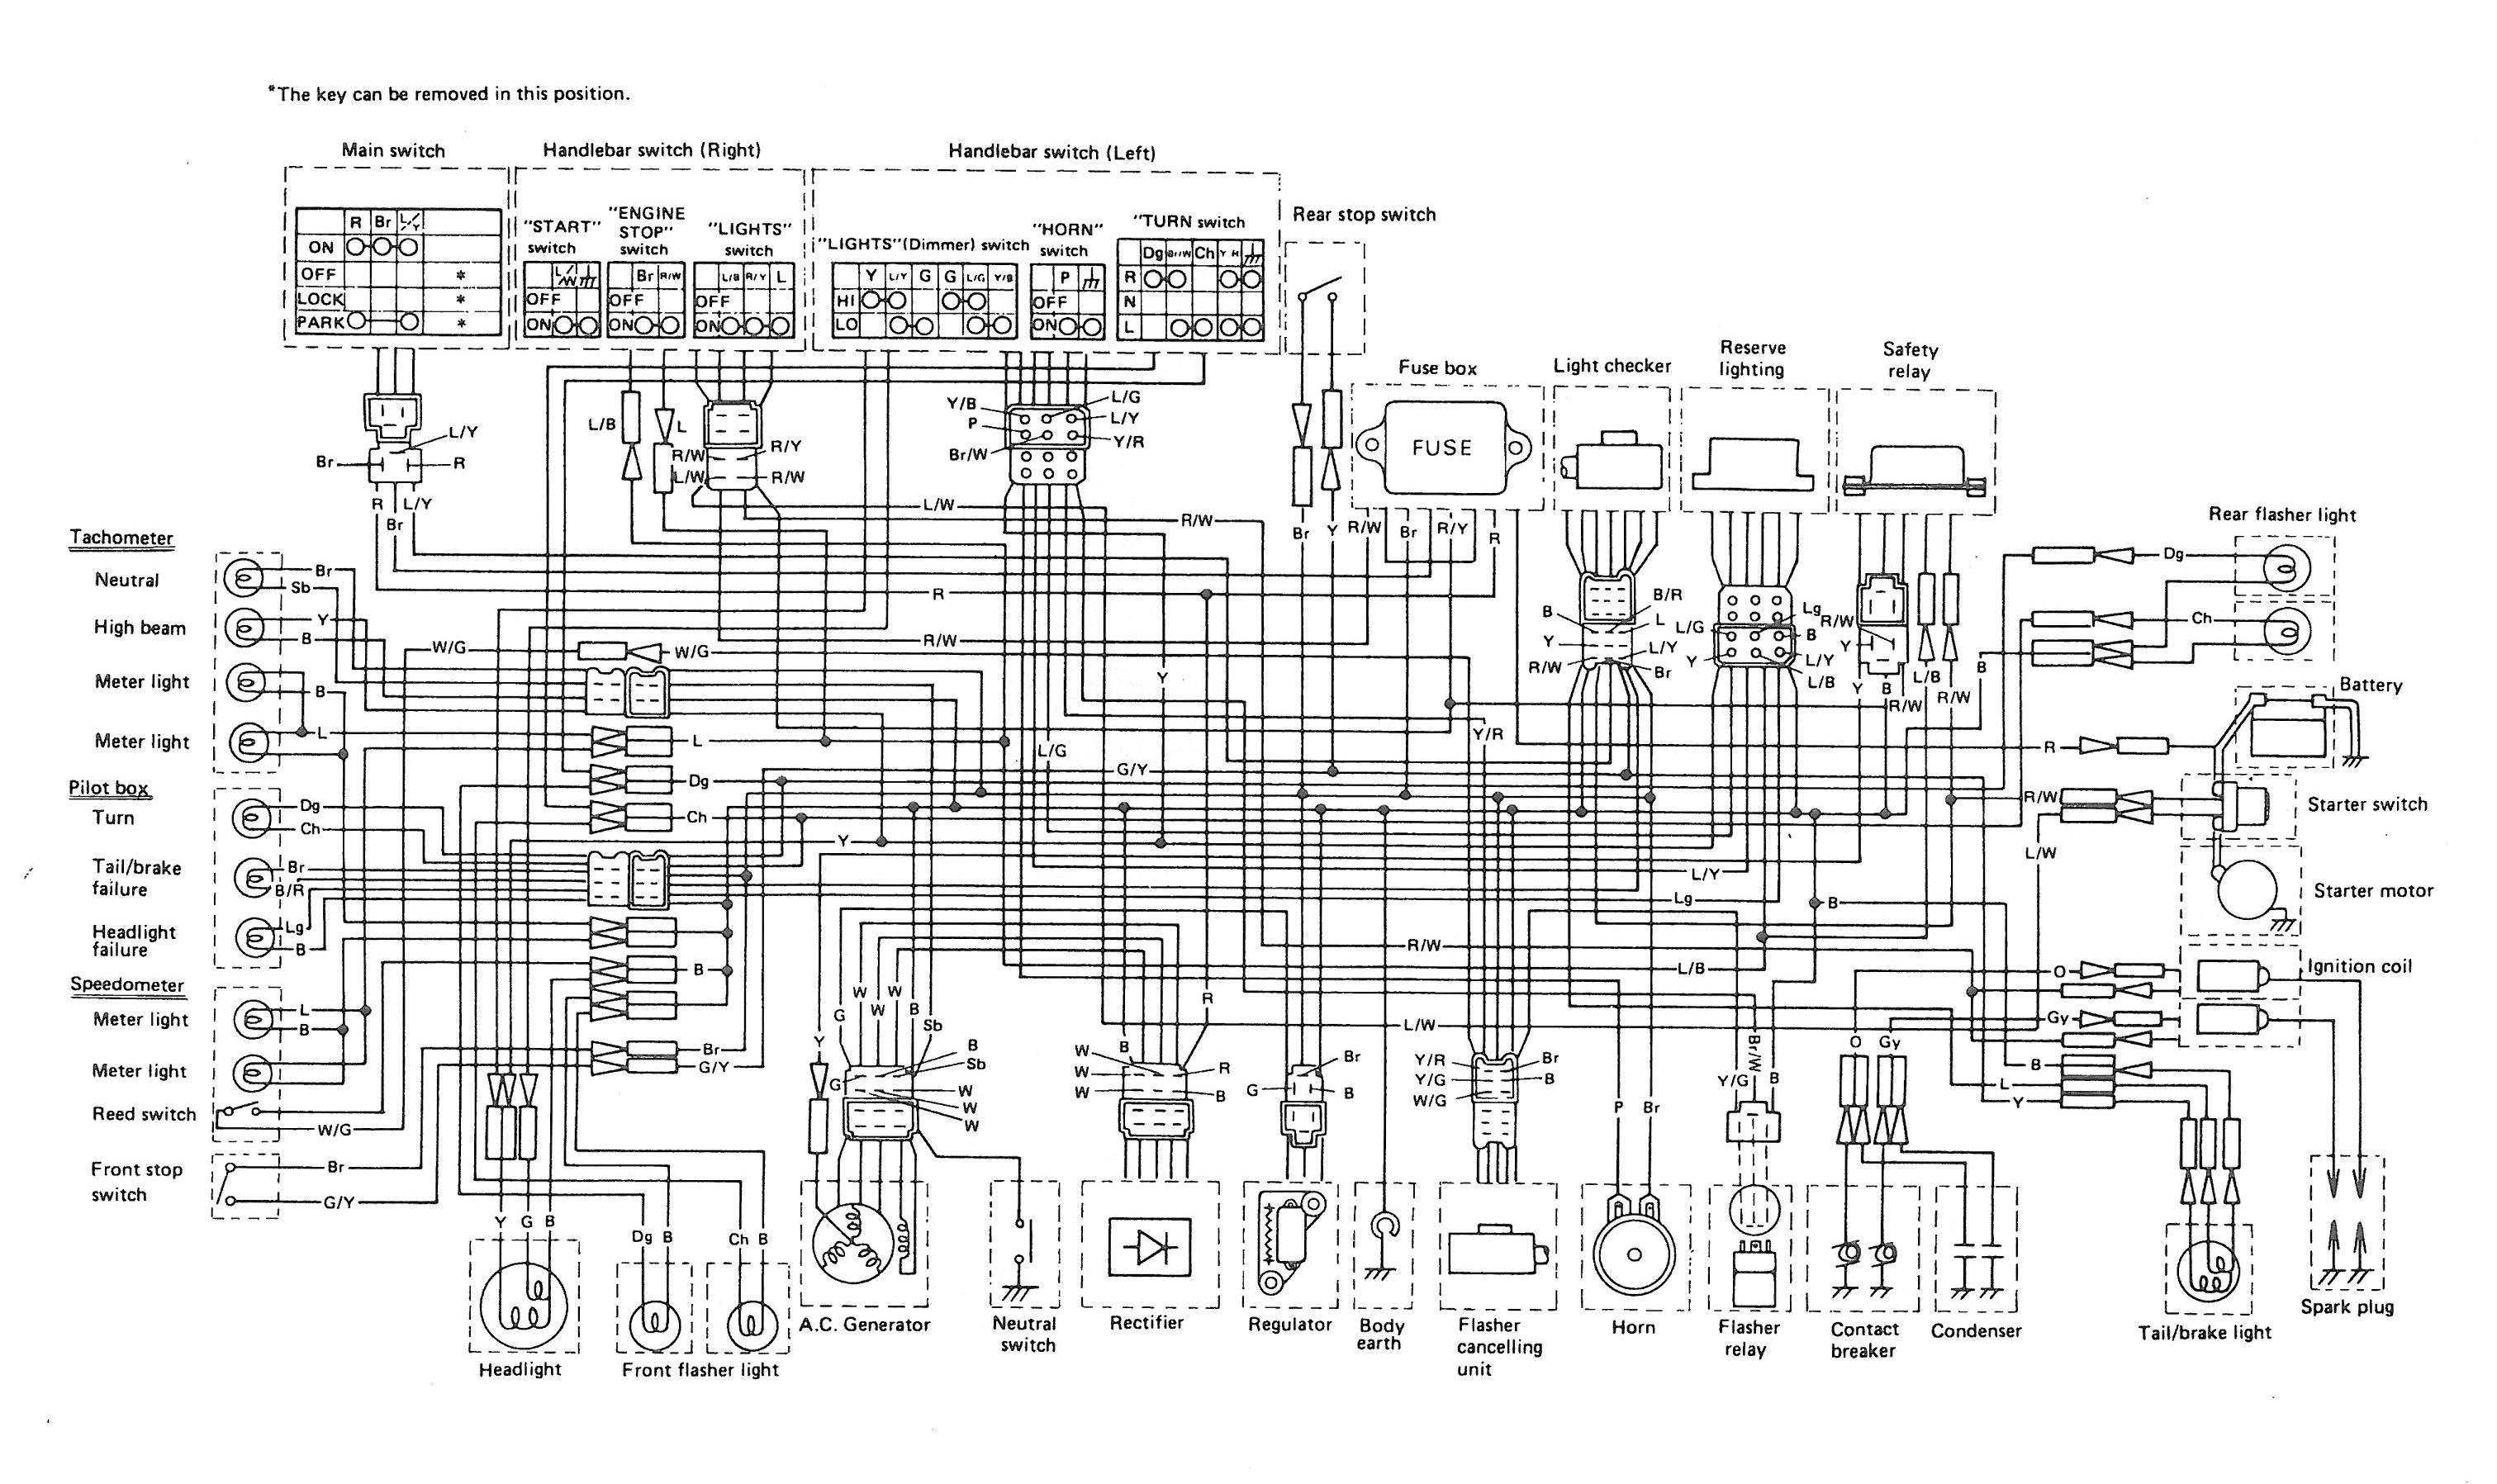 78 xsse wiring 6 1 se 250 wiring diagram switched outlet wiring diagram \u2022 wiring e250 wiring diagram at soozxer.org